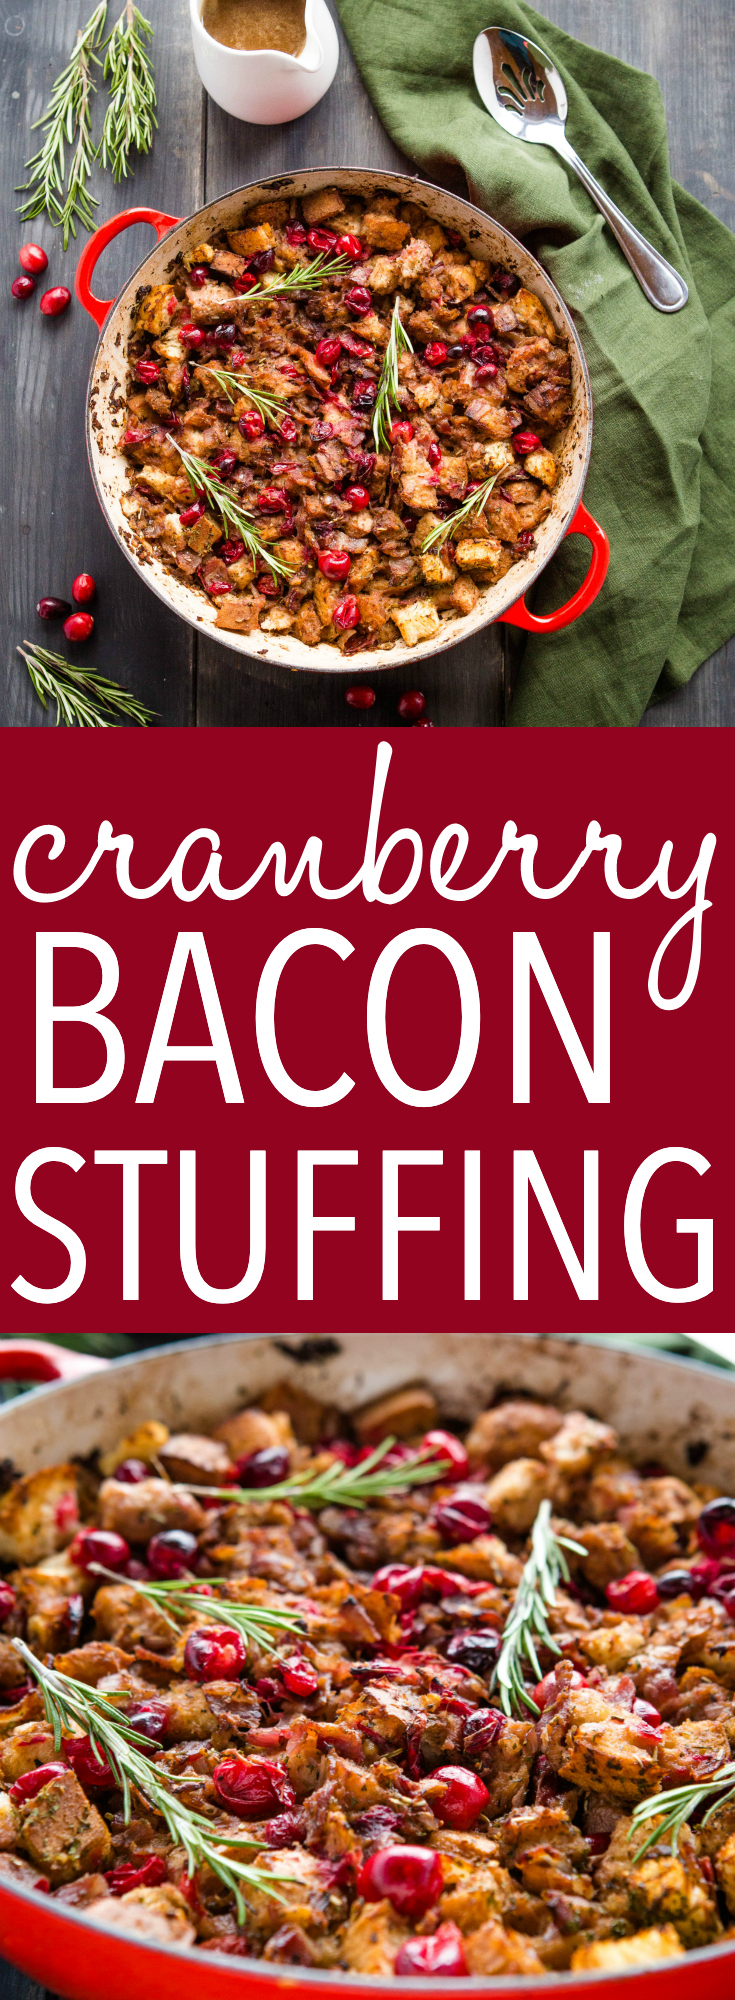 This One Pan Cranberry Bacon Stuffing is a delicious holiday side dish that's packed with seasonal flavours! It's easy to make in about 30 minutes and it's perfect for Christmas! Recipe from thebusybaker.ca! #cranberry #bacon #stuffing #christmas #holiday #sidedish #flavour #rosemary #herbs #christmasdinner #family via @busybakerblog